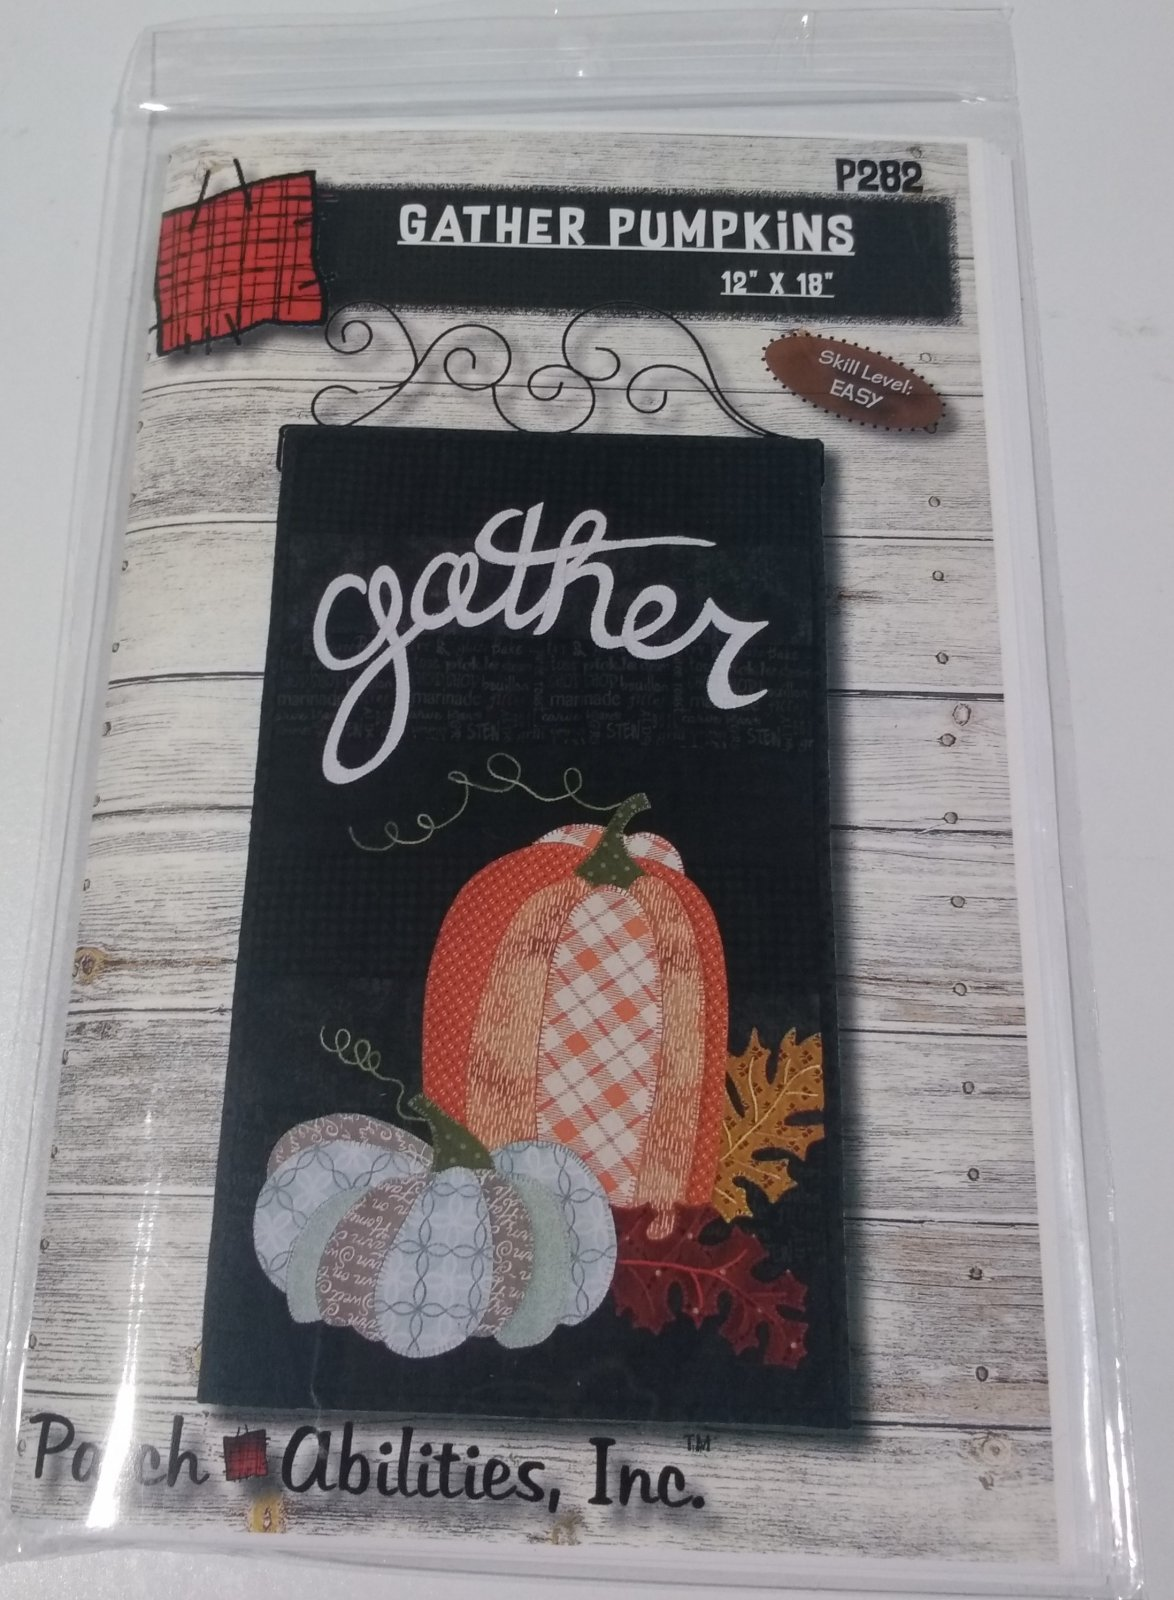 GATHER PUMPKINS BY PATCHABILITIES